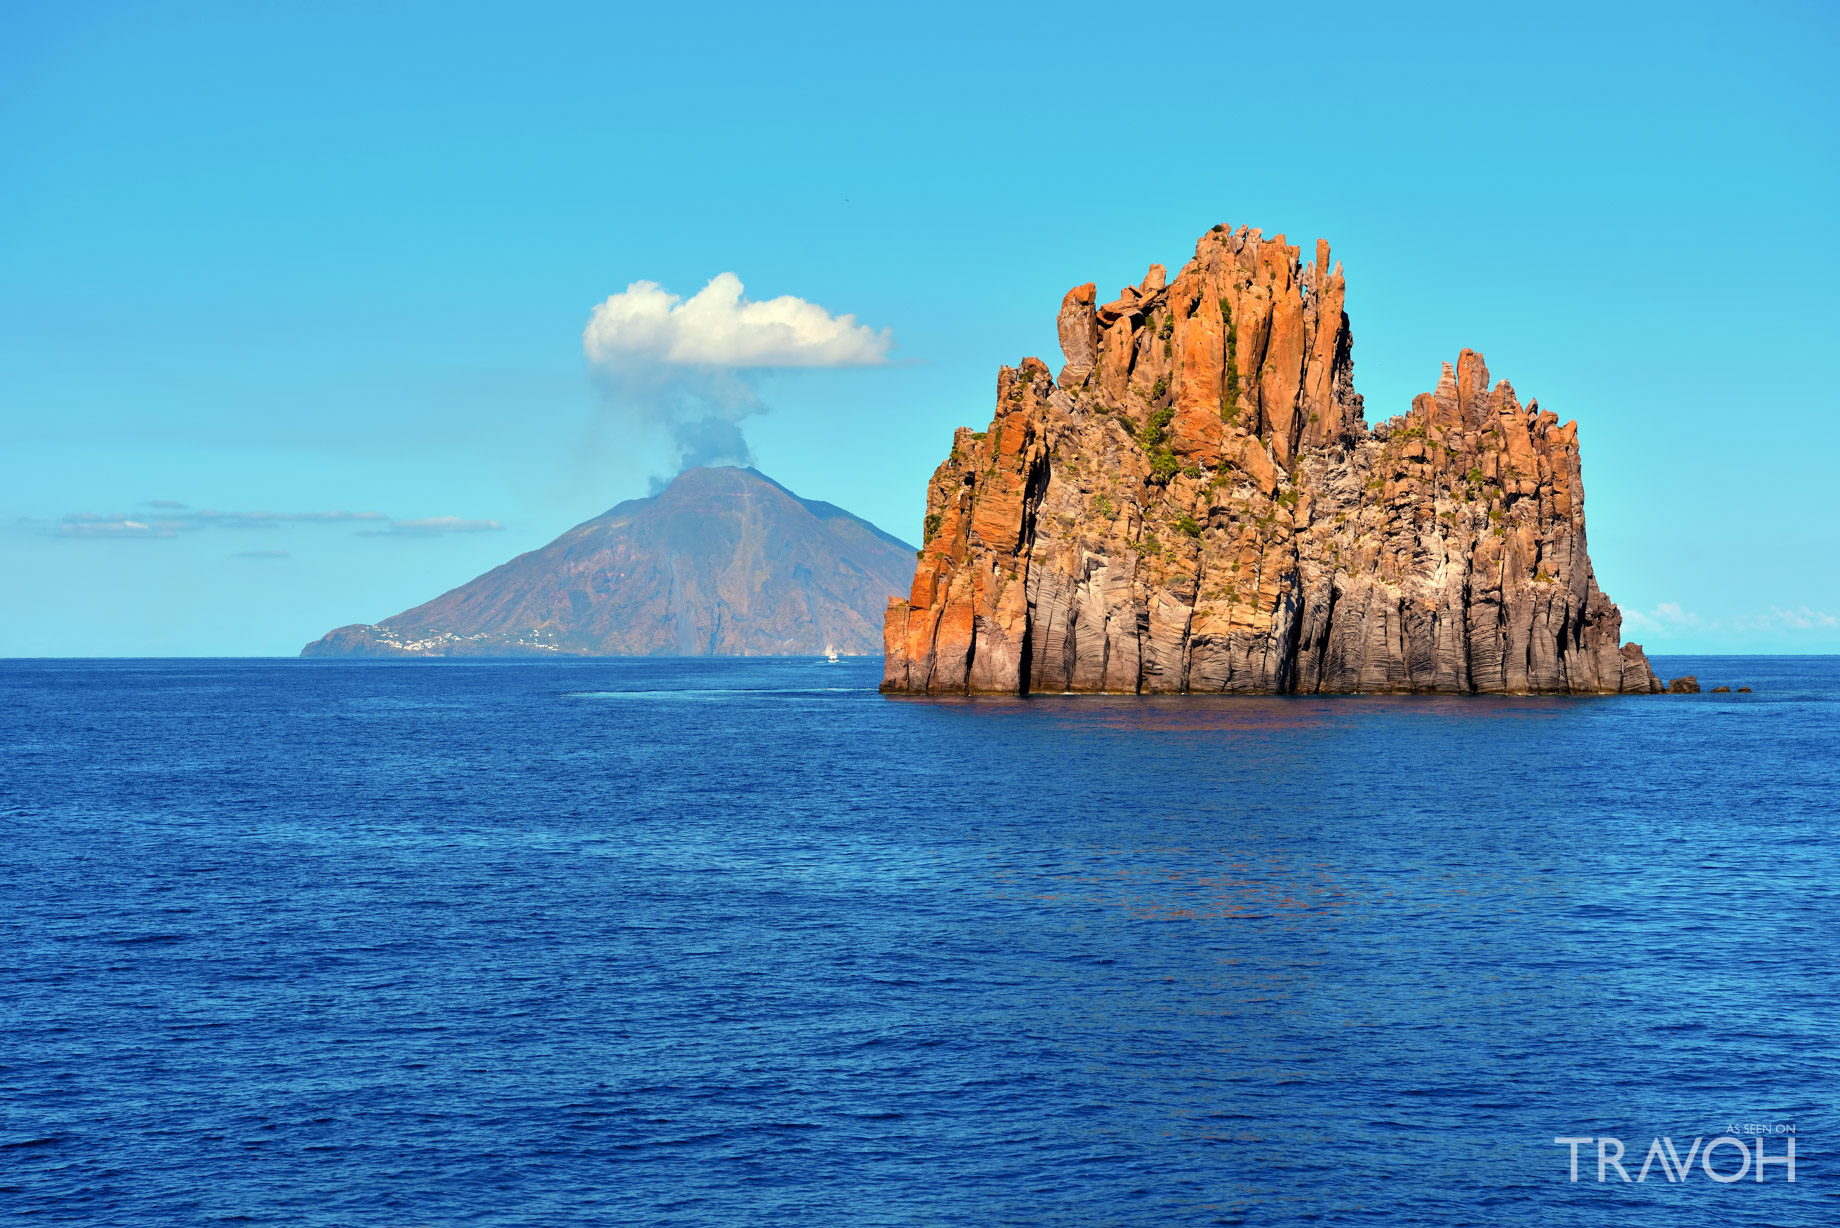 Yachting the Mediterranean - Visit an Active Volcano on the Island of Stromboli, Italy